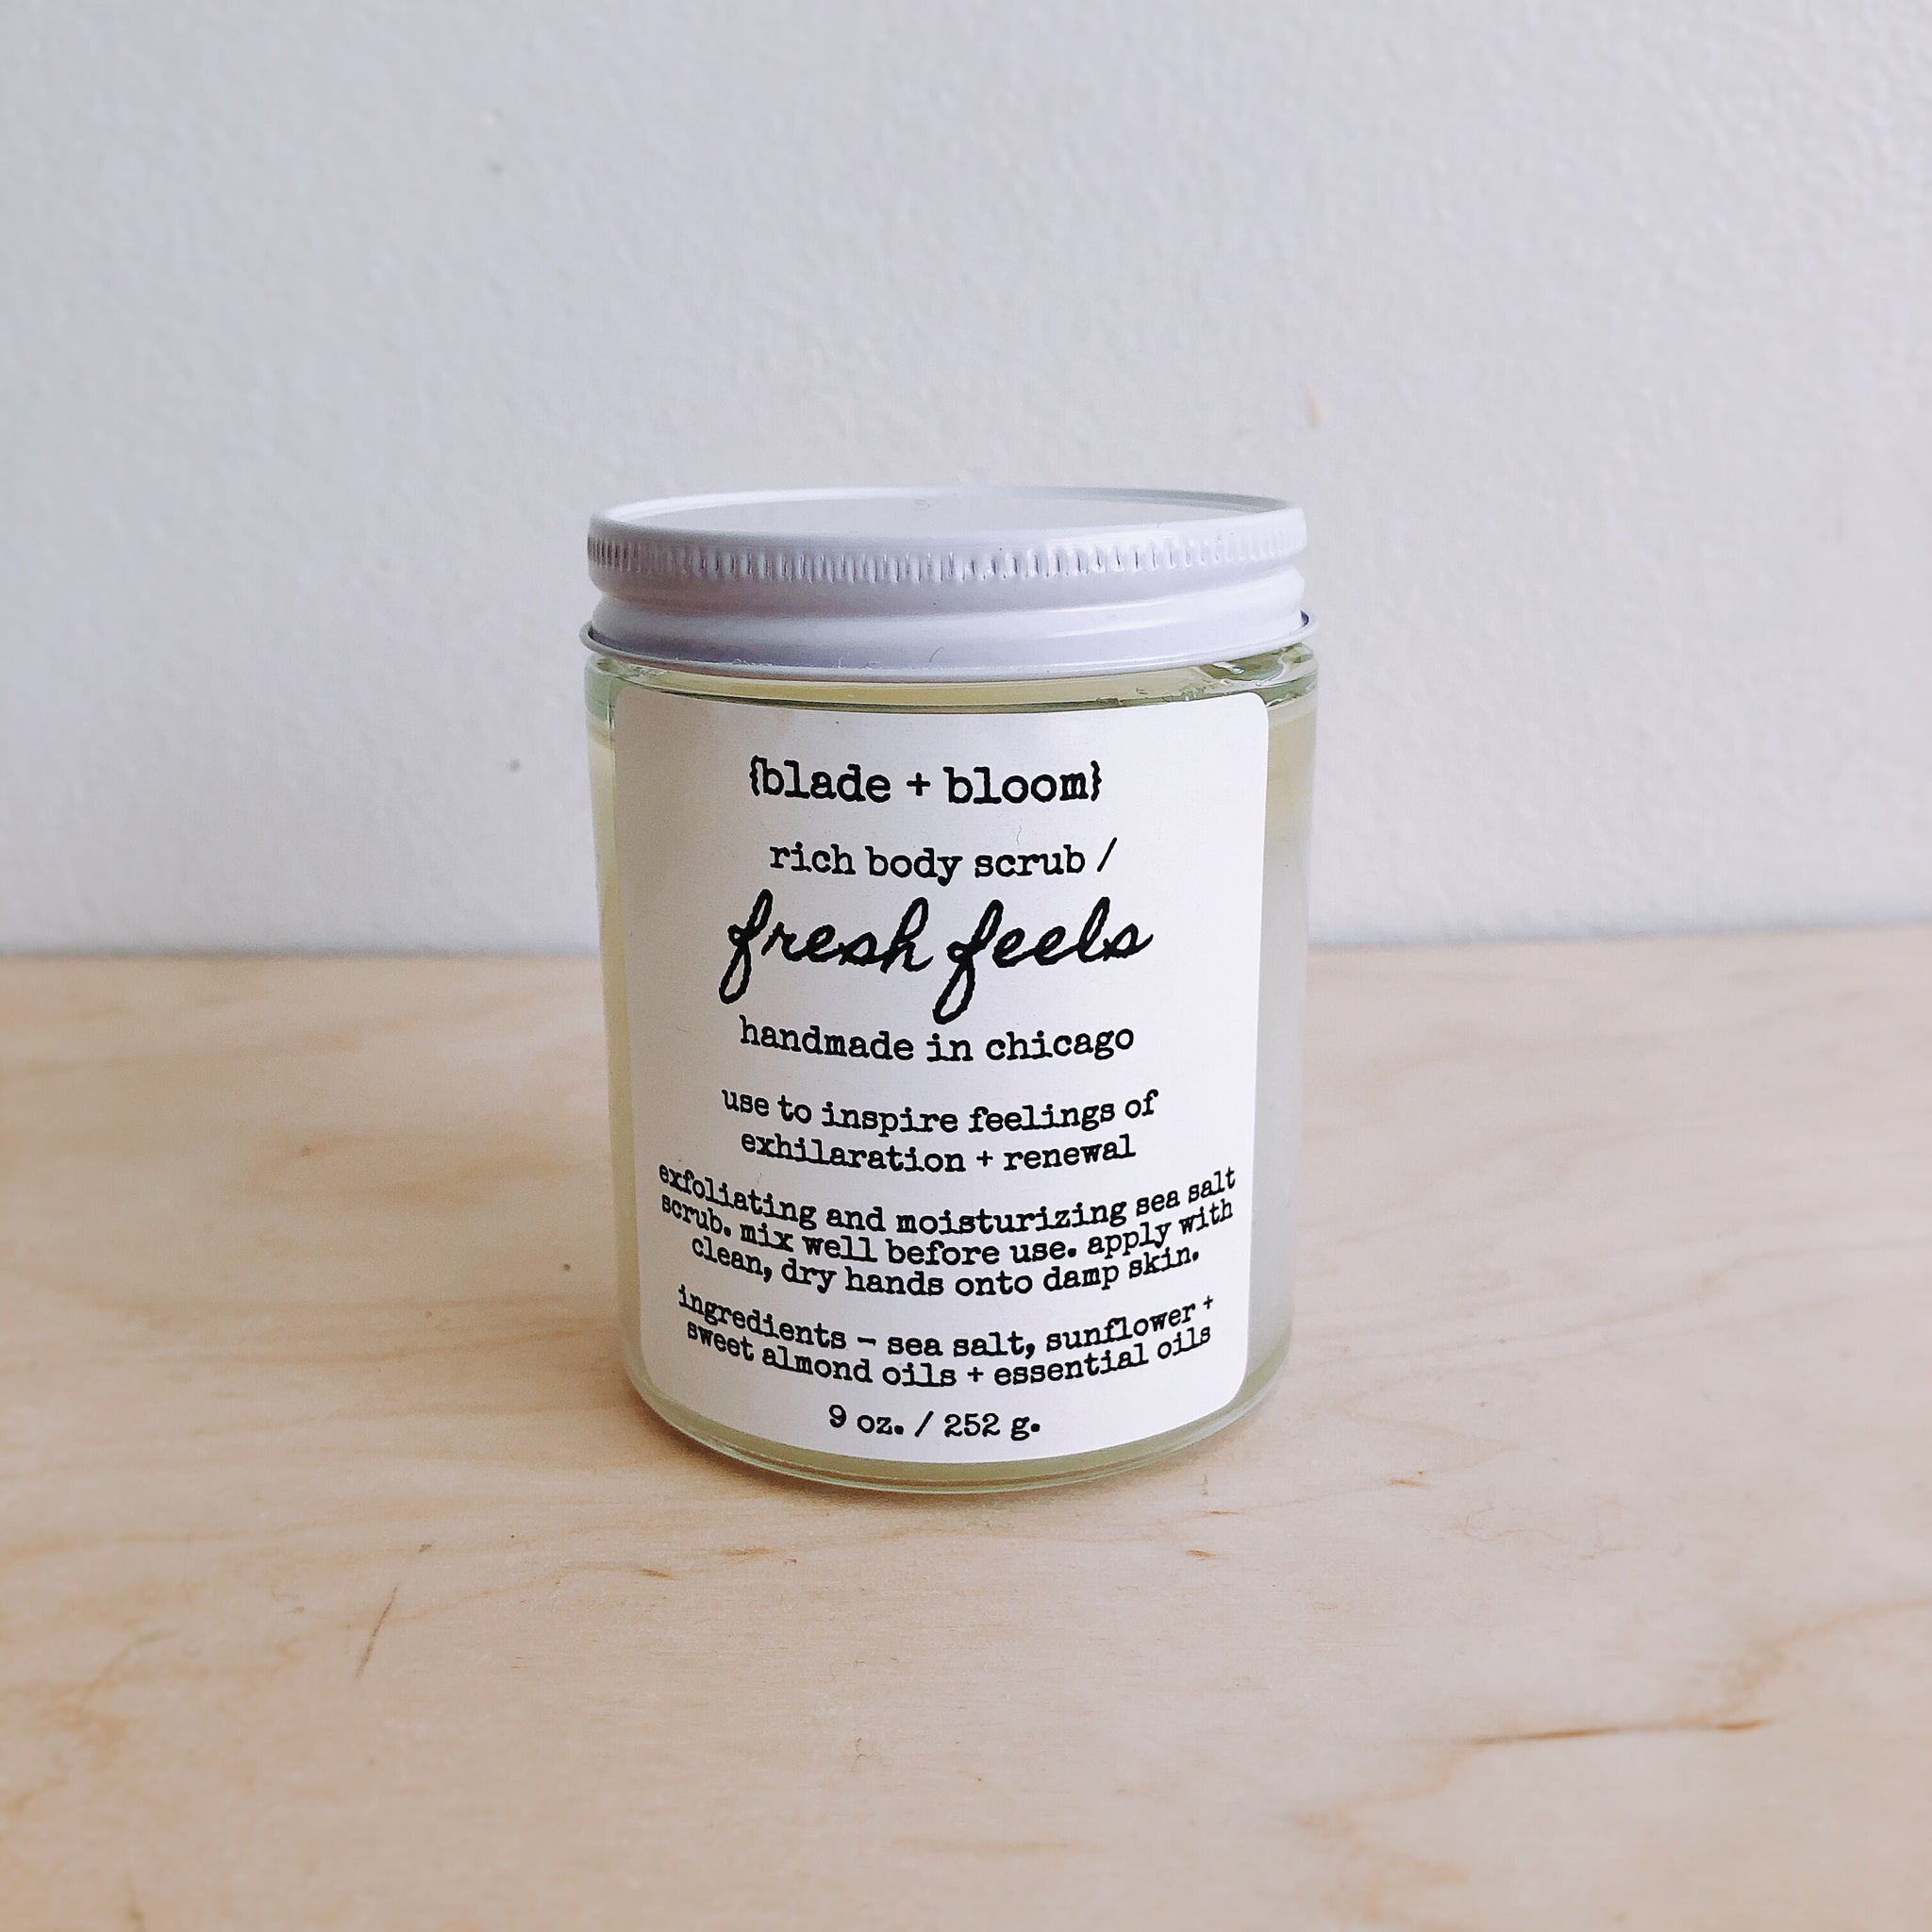 rich body scrub / fresh feels